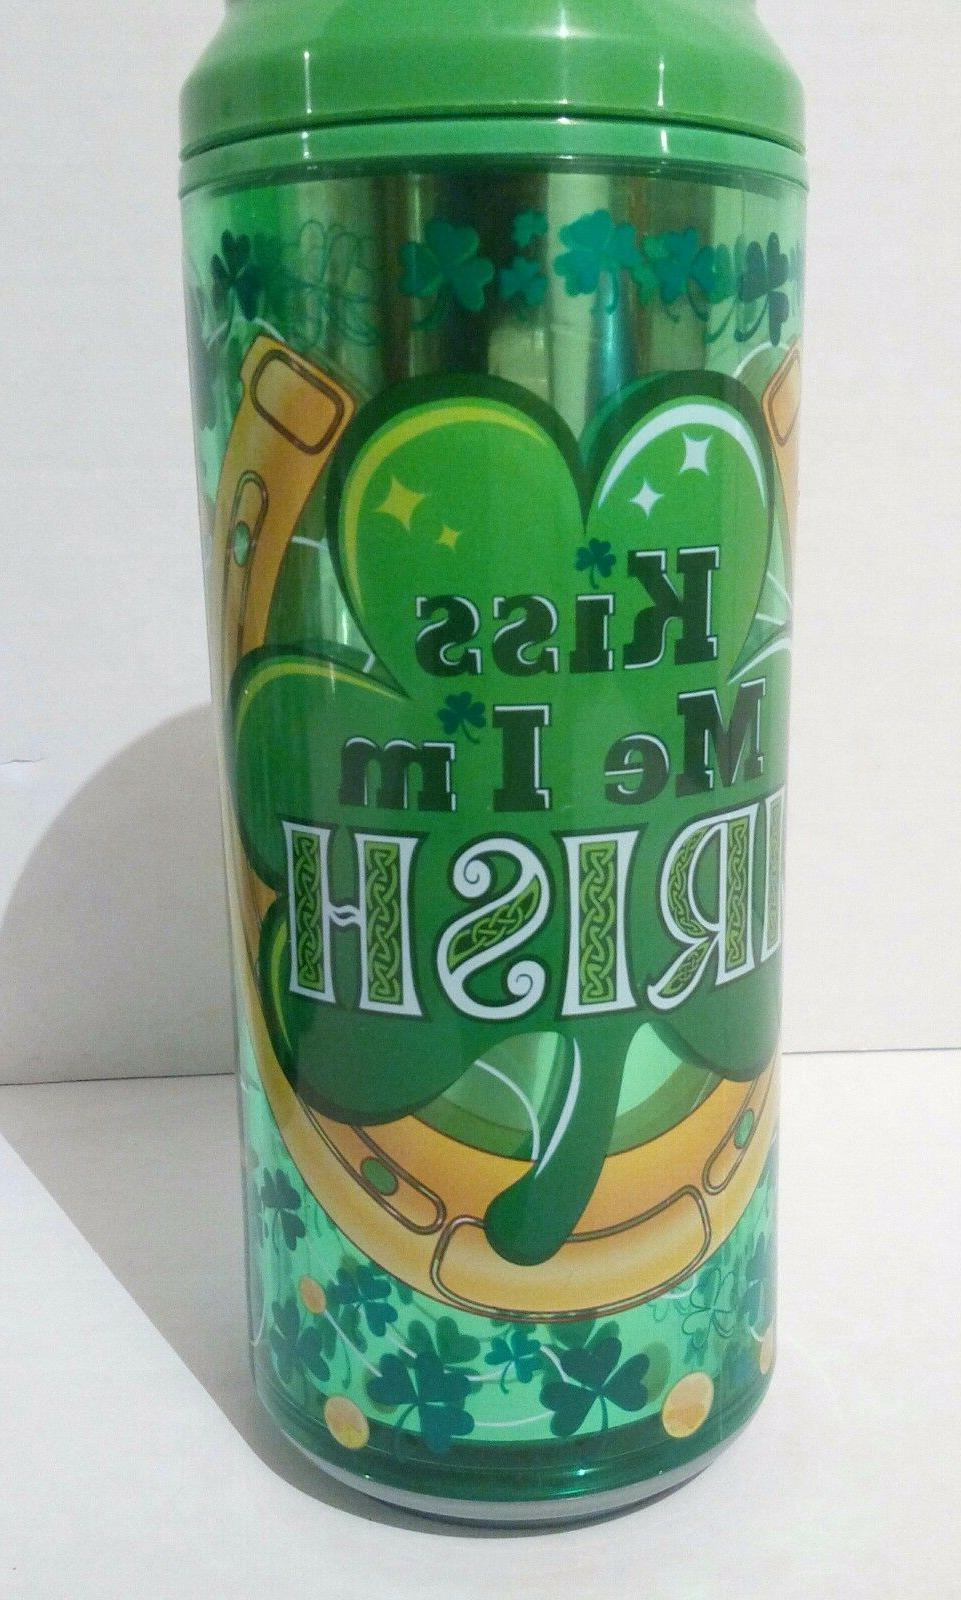 St Patricks Day Cool Gear Can Go Green Luck Kiss Me I'm Iris